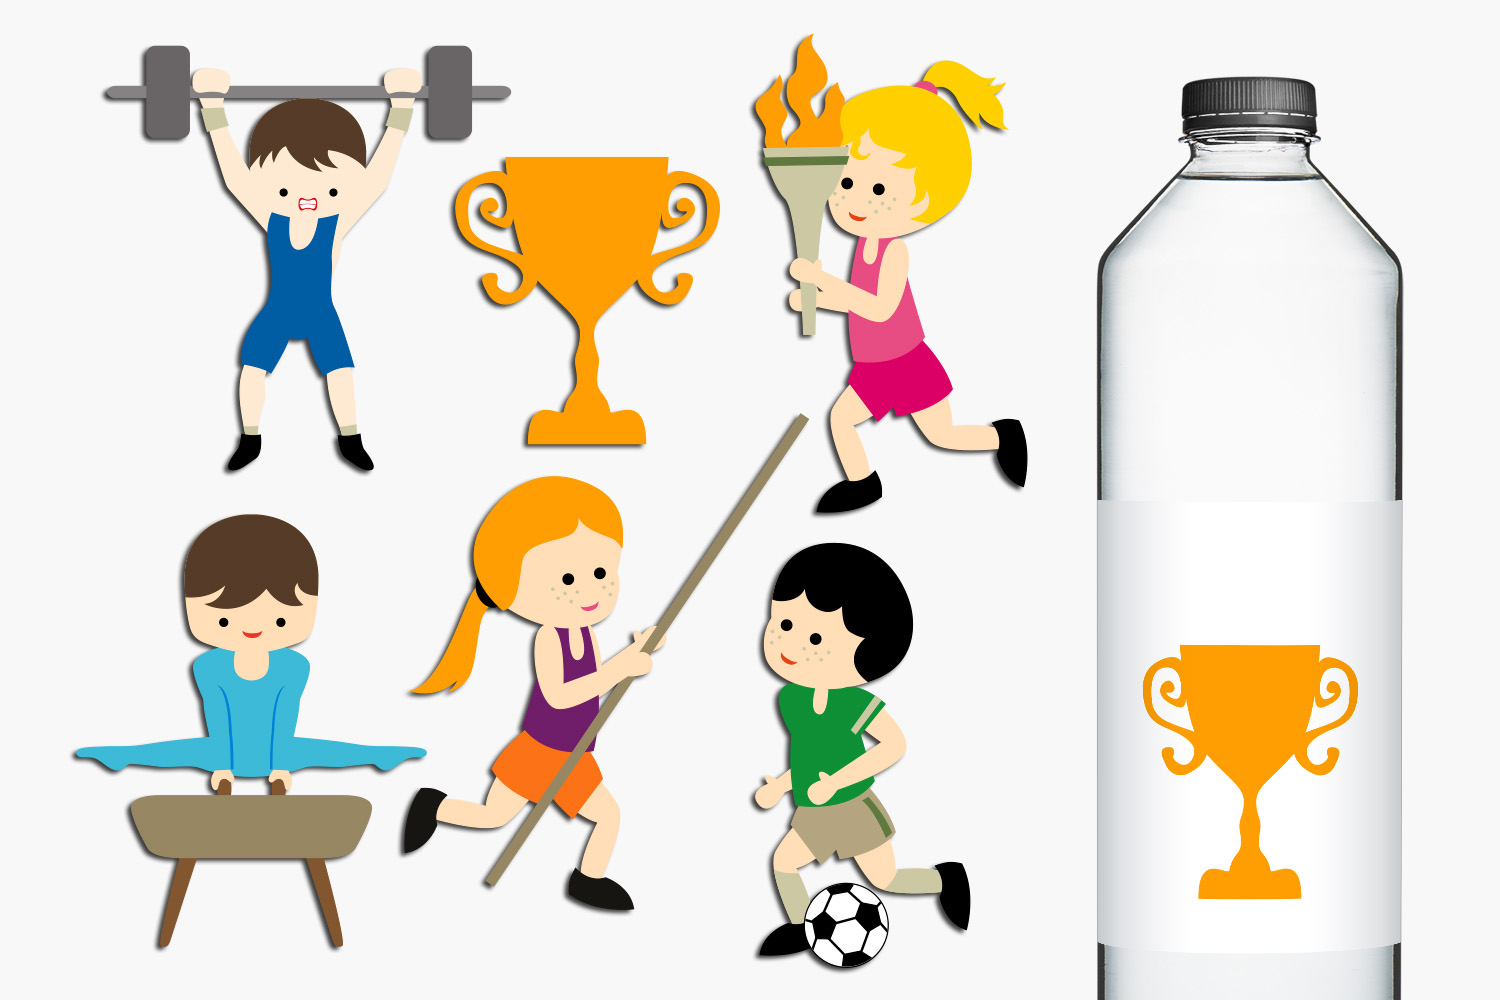 Summer Sport Competition Clip Art Illustrations example image 1